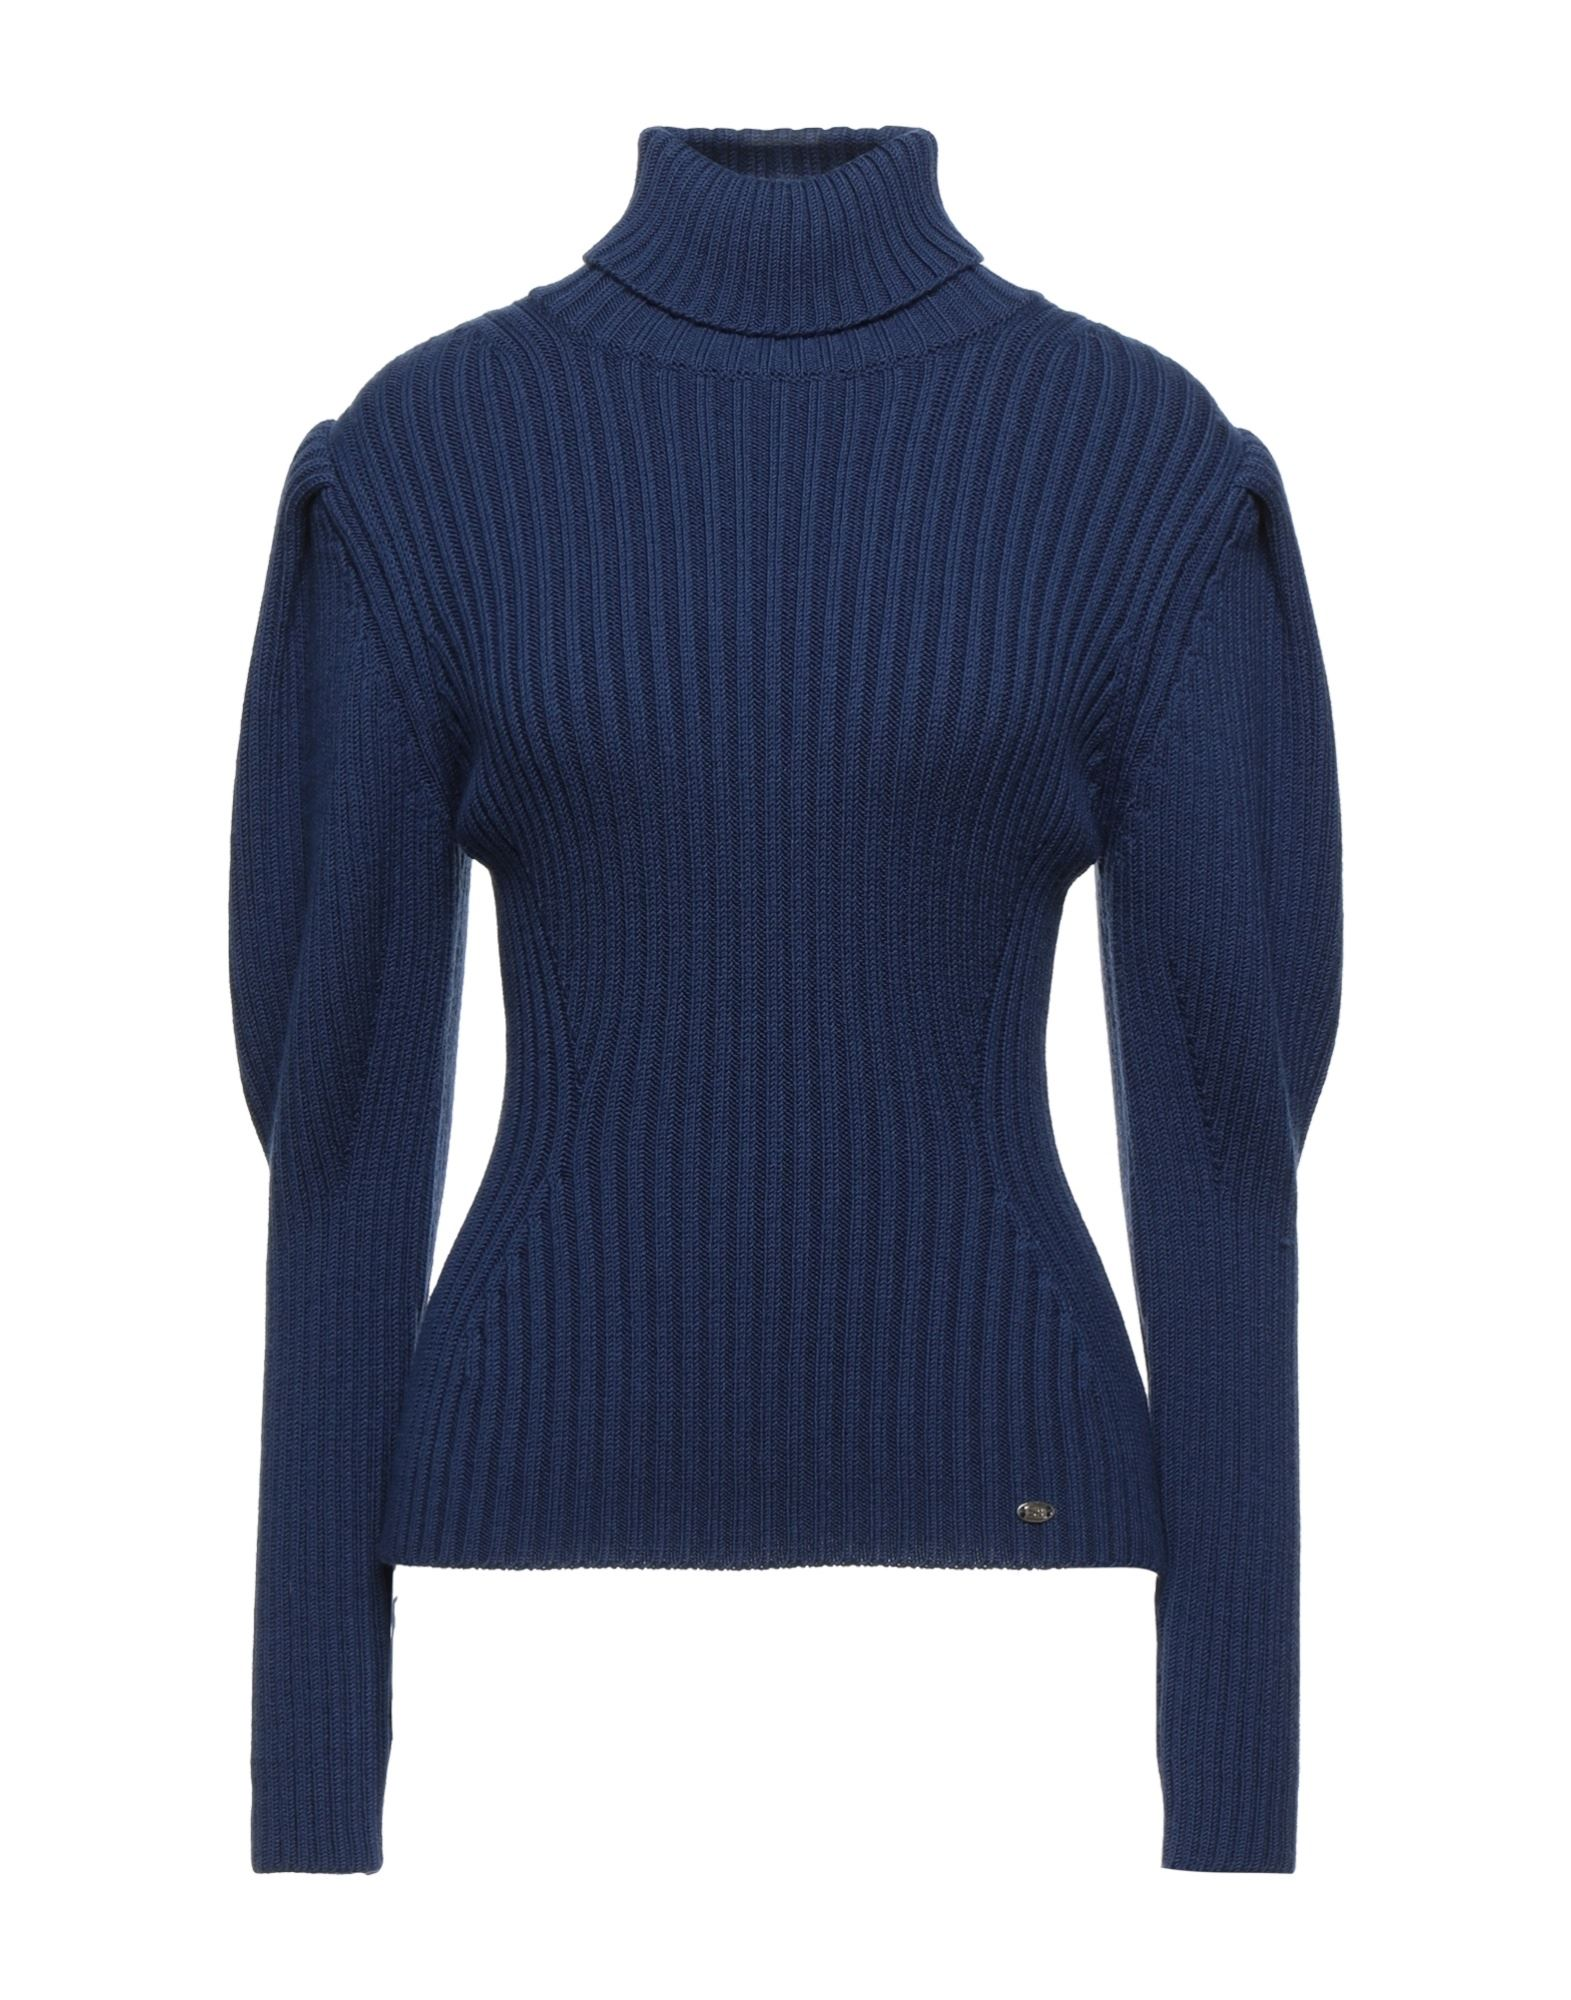 ELISABETTA FRANCHI Turtlenecks - Item 14086941